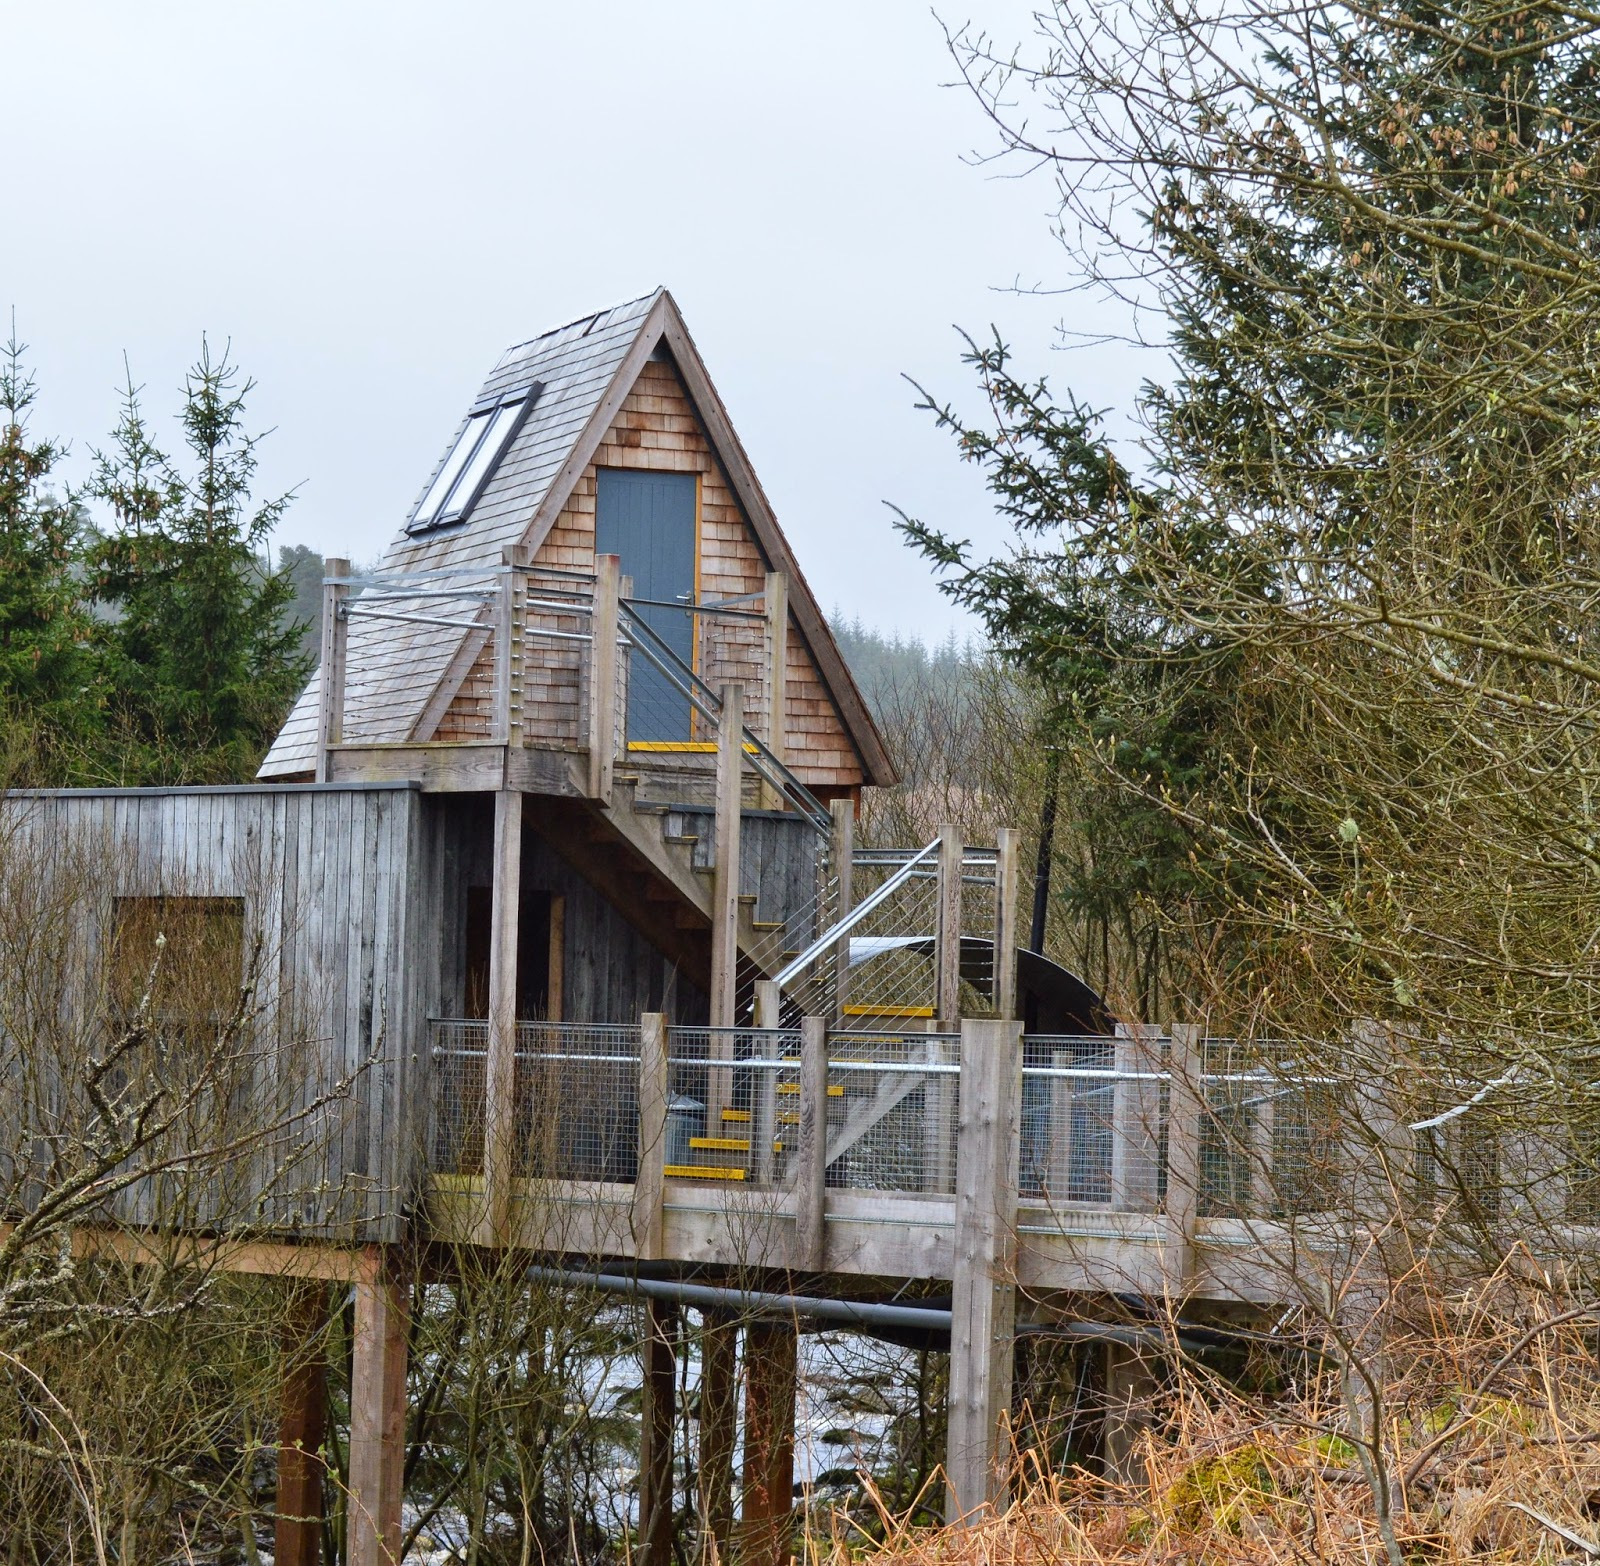 Sky Den Tree House Kielder